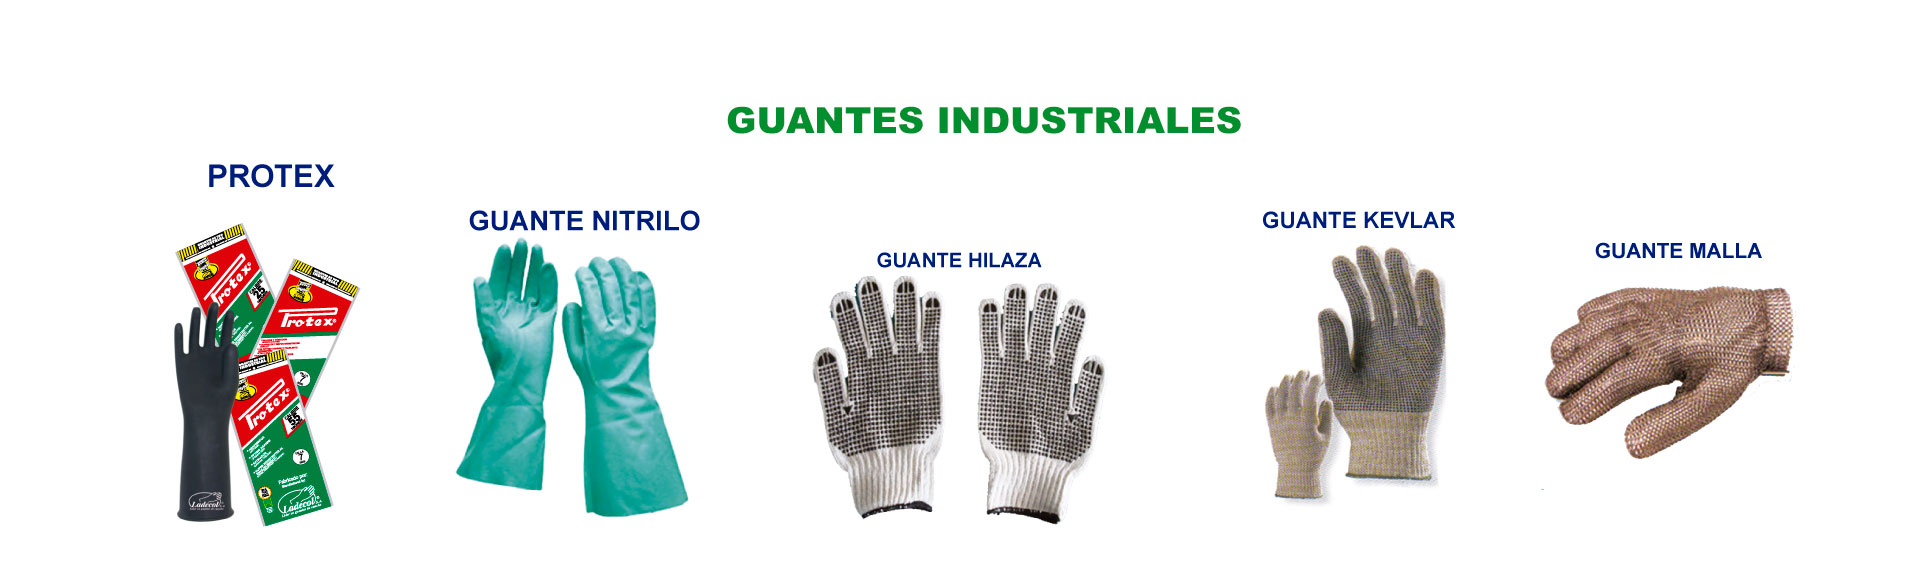 Guantes Industriales-Inecpro